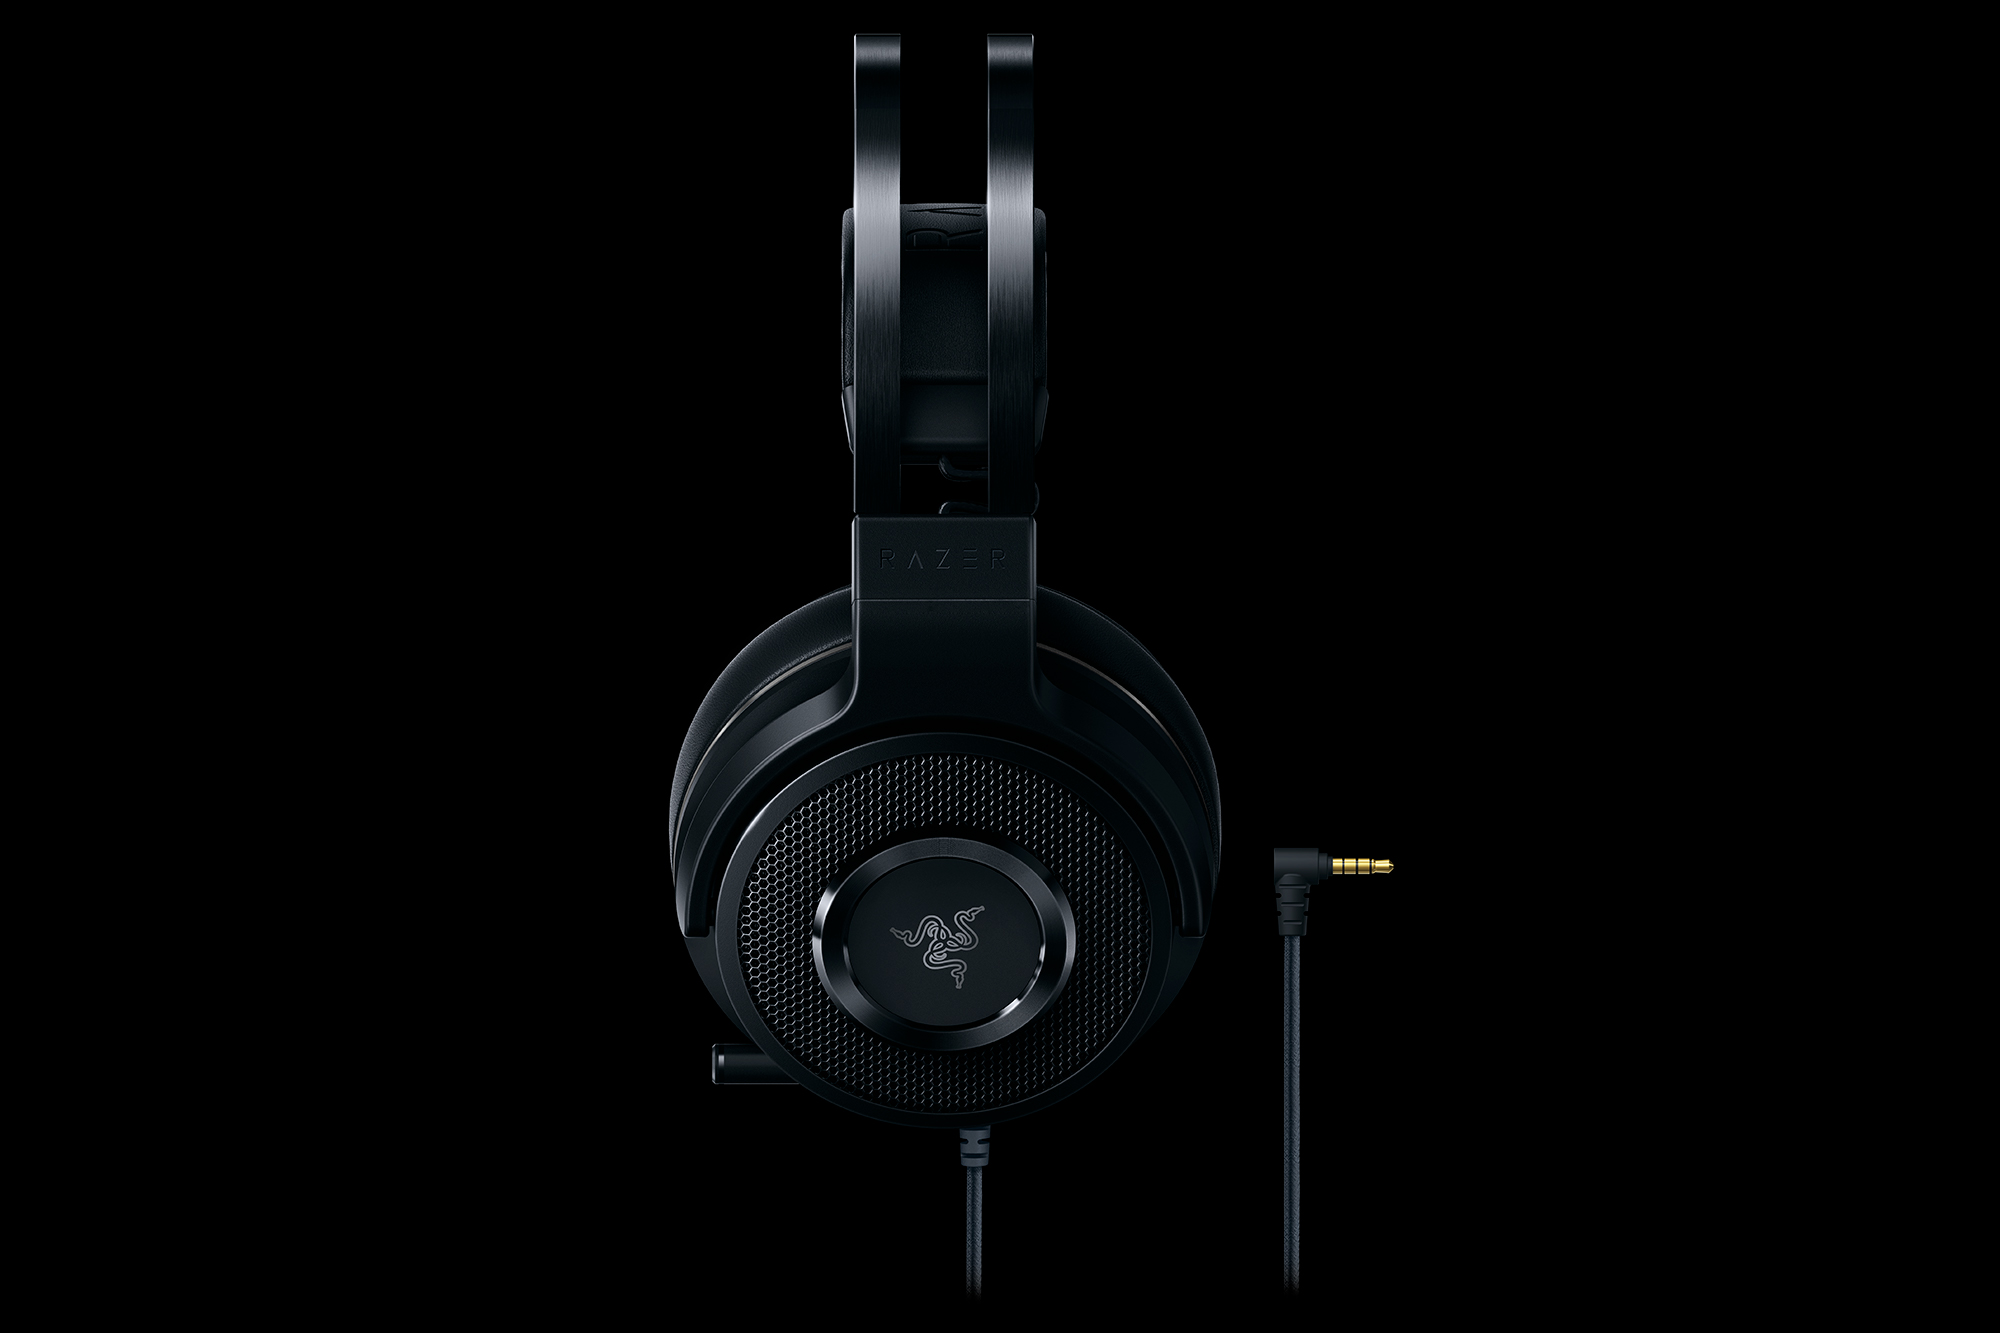 Razer Thresher Tournament Edition Razer Launches Gaming Headsets For Xbox, PlayStation & PC